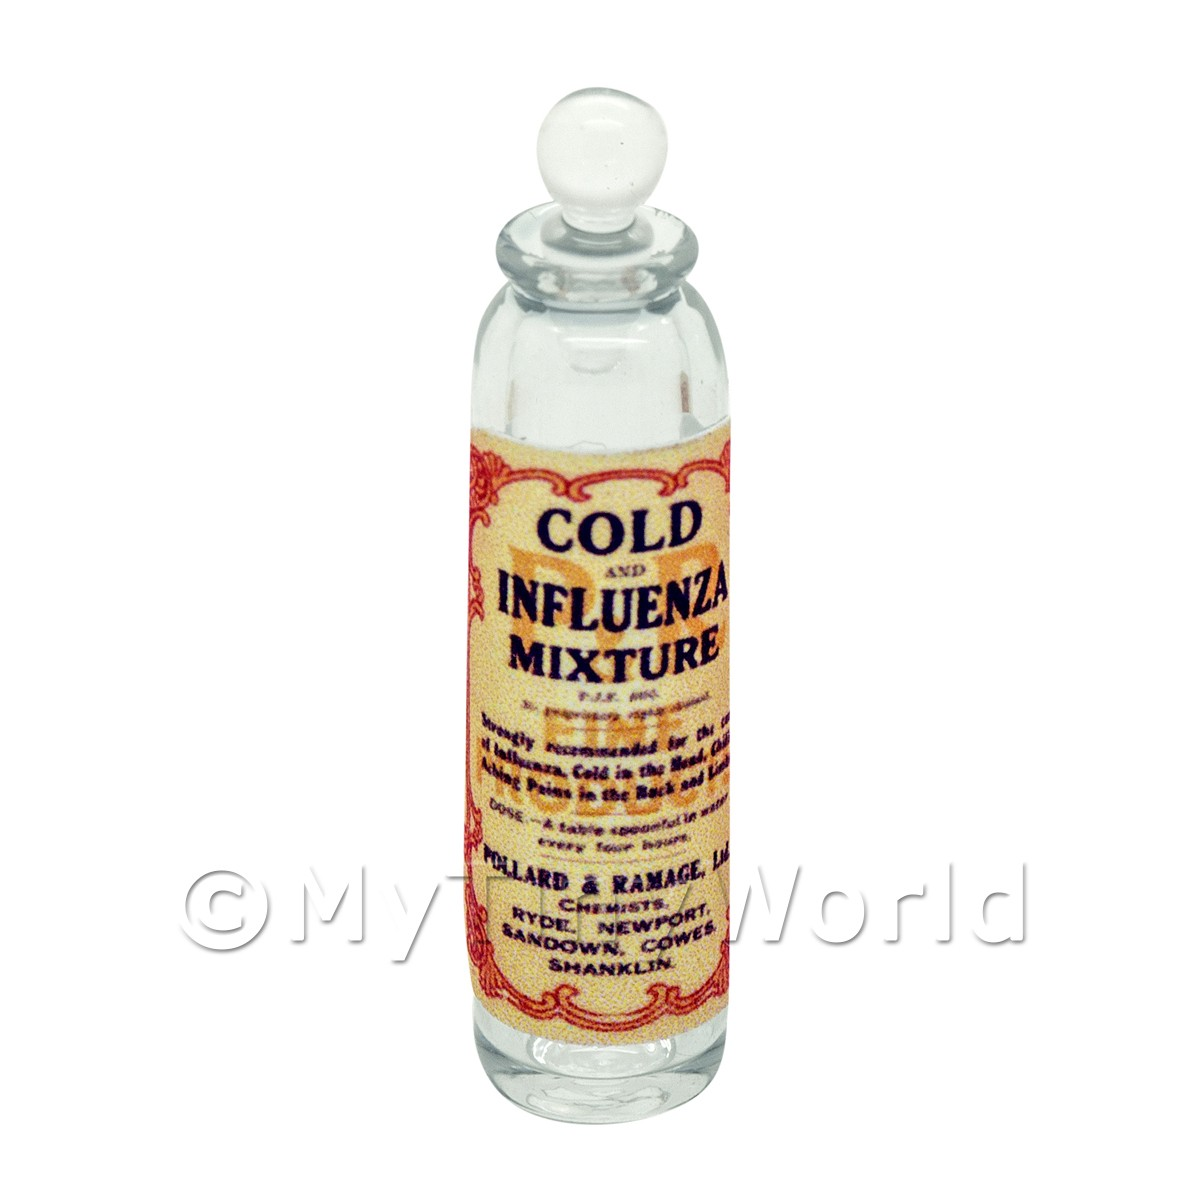 Miniature Influenza Mixture Clear Glass Apothecary Bottle